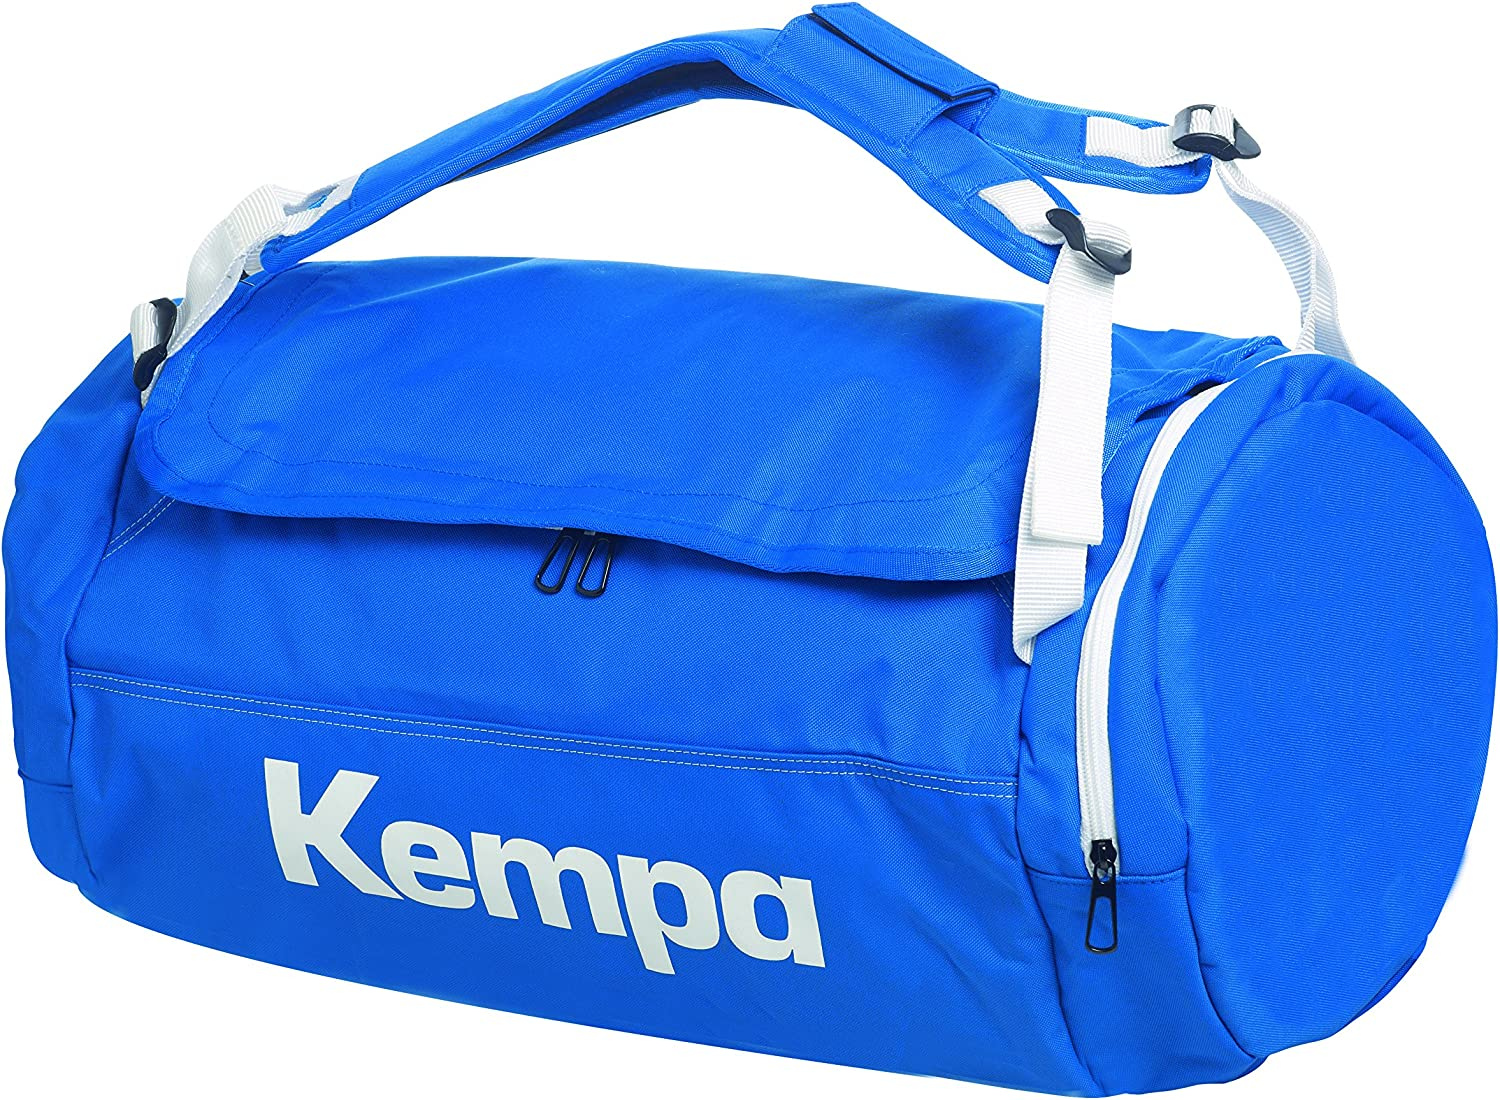 adidas List price Limited Special Price K-line Bag Small Black White